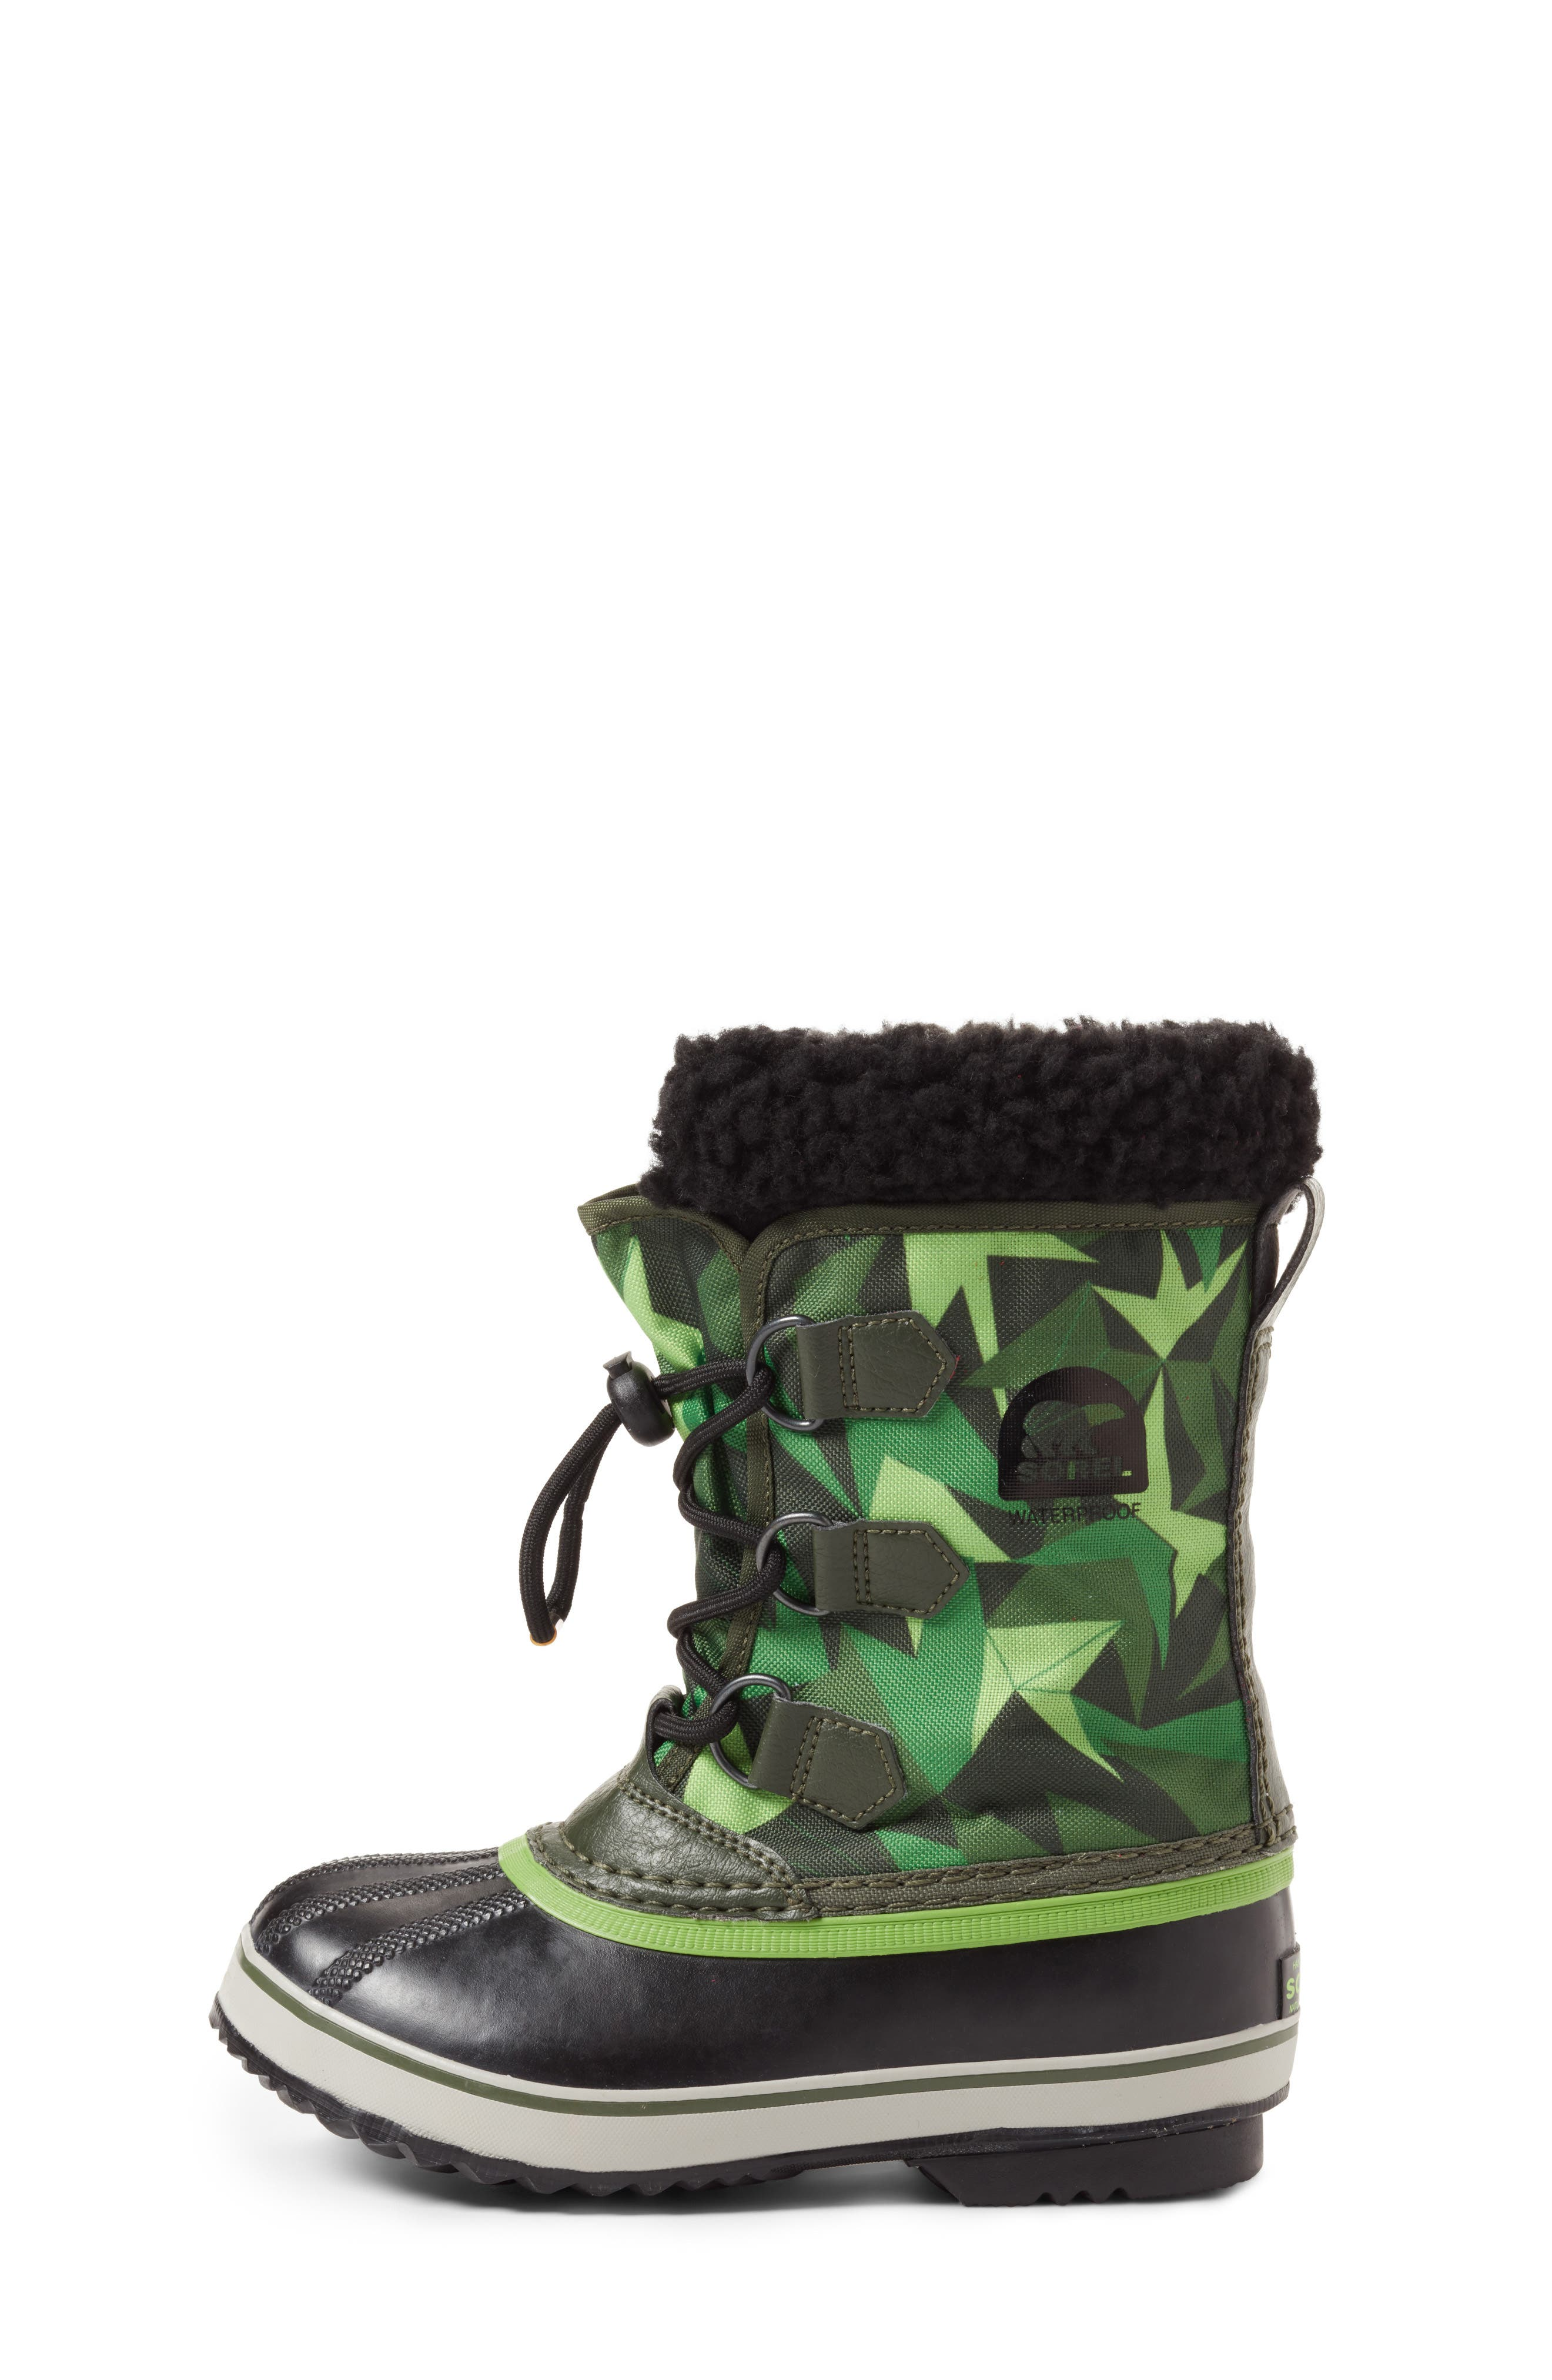 Yoot Pac Waterproof Insulated Snow Boot,                             Alternate thumbnail 4, color,                             Surplus Green/ Green Mamba